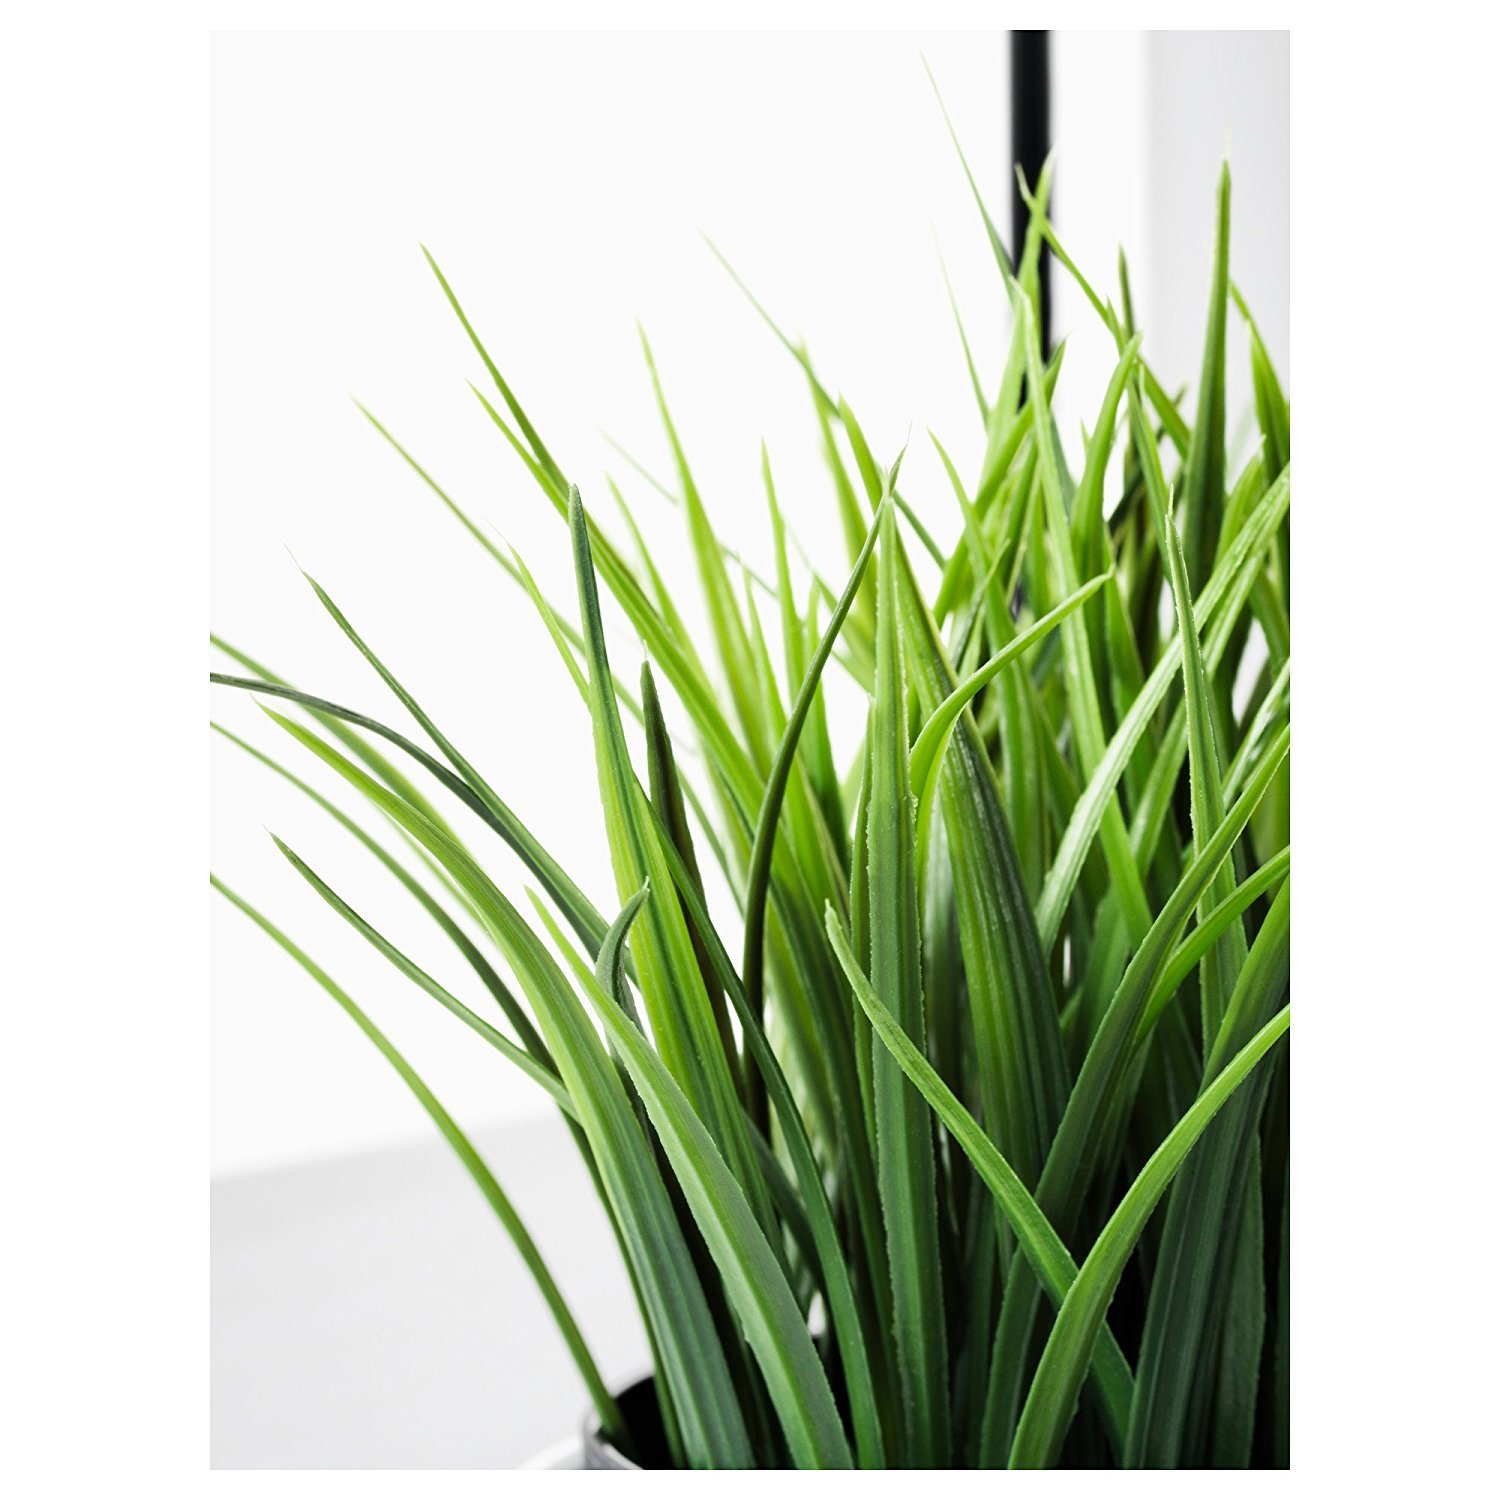 ikea artificial potted plant wheat grass inch home garden decor flora flowers. Black Bedroom Furniture Sets. Home Design Ideas